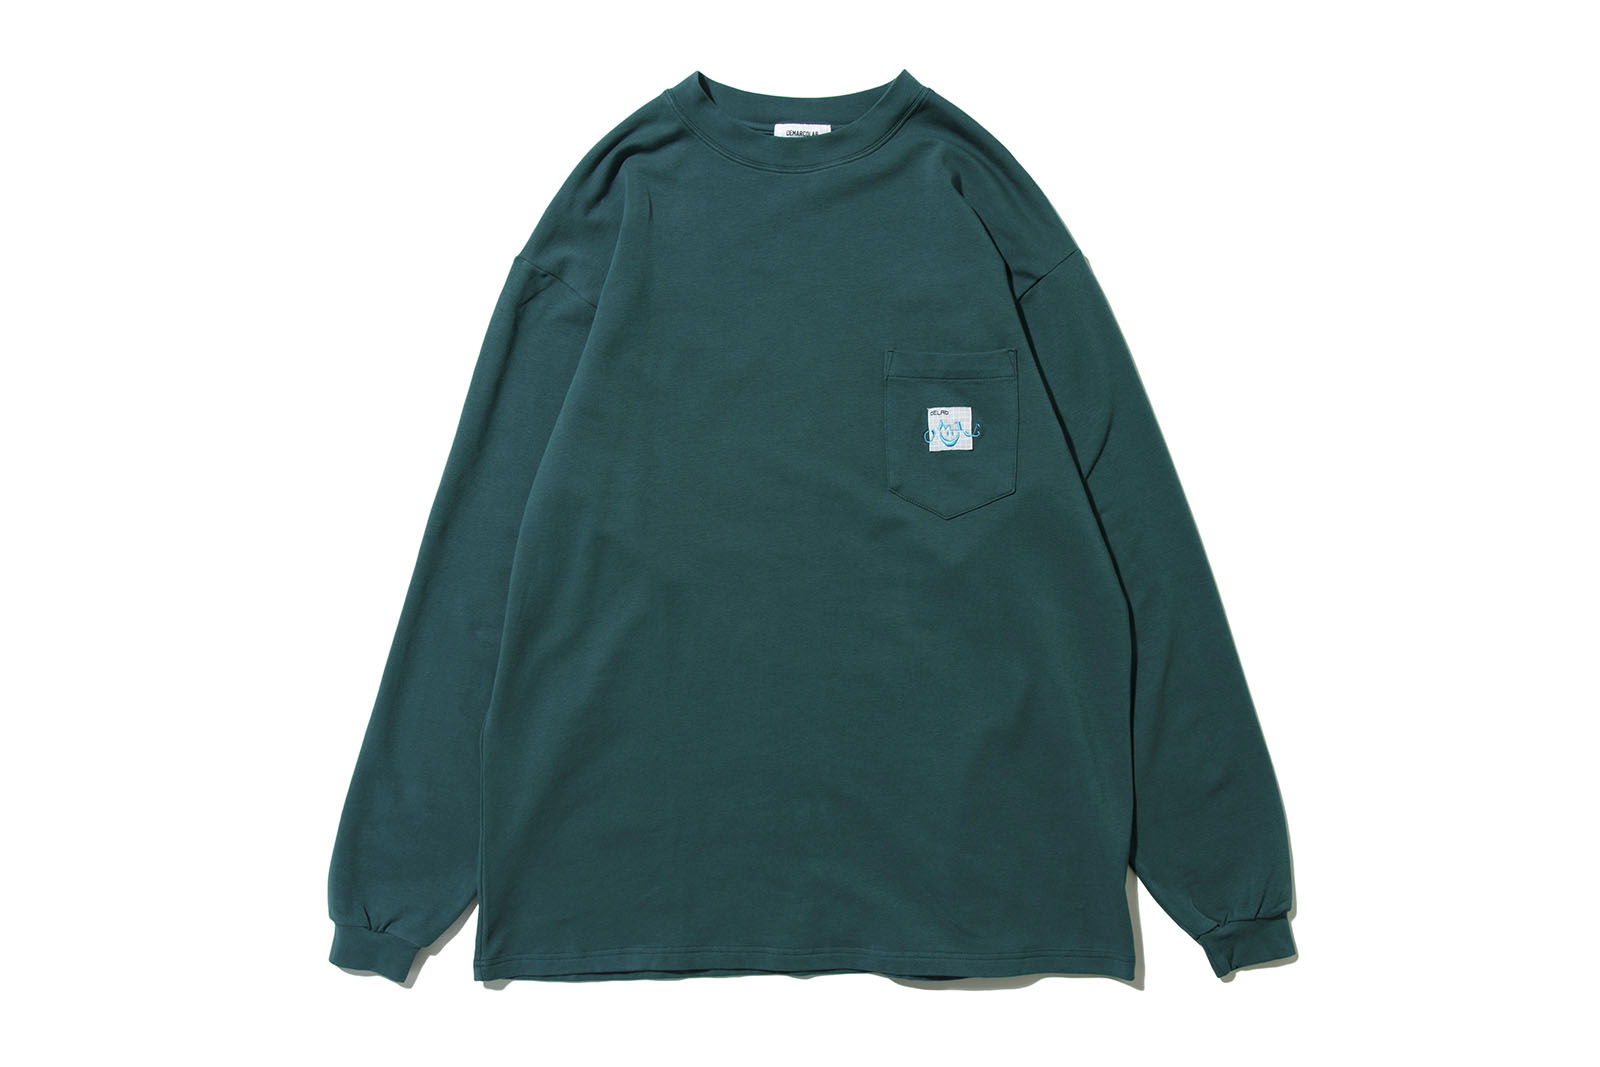 DeMarcoLab AsCIID L/S HEAVY POCKET TEE 2COLORS